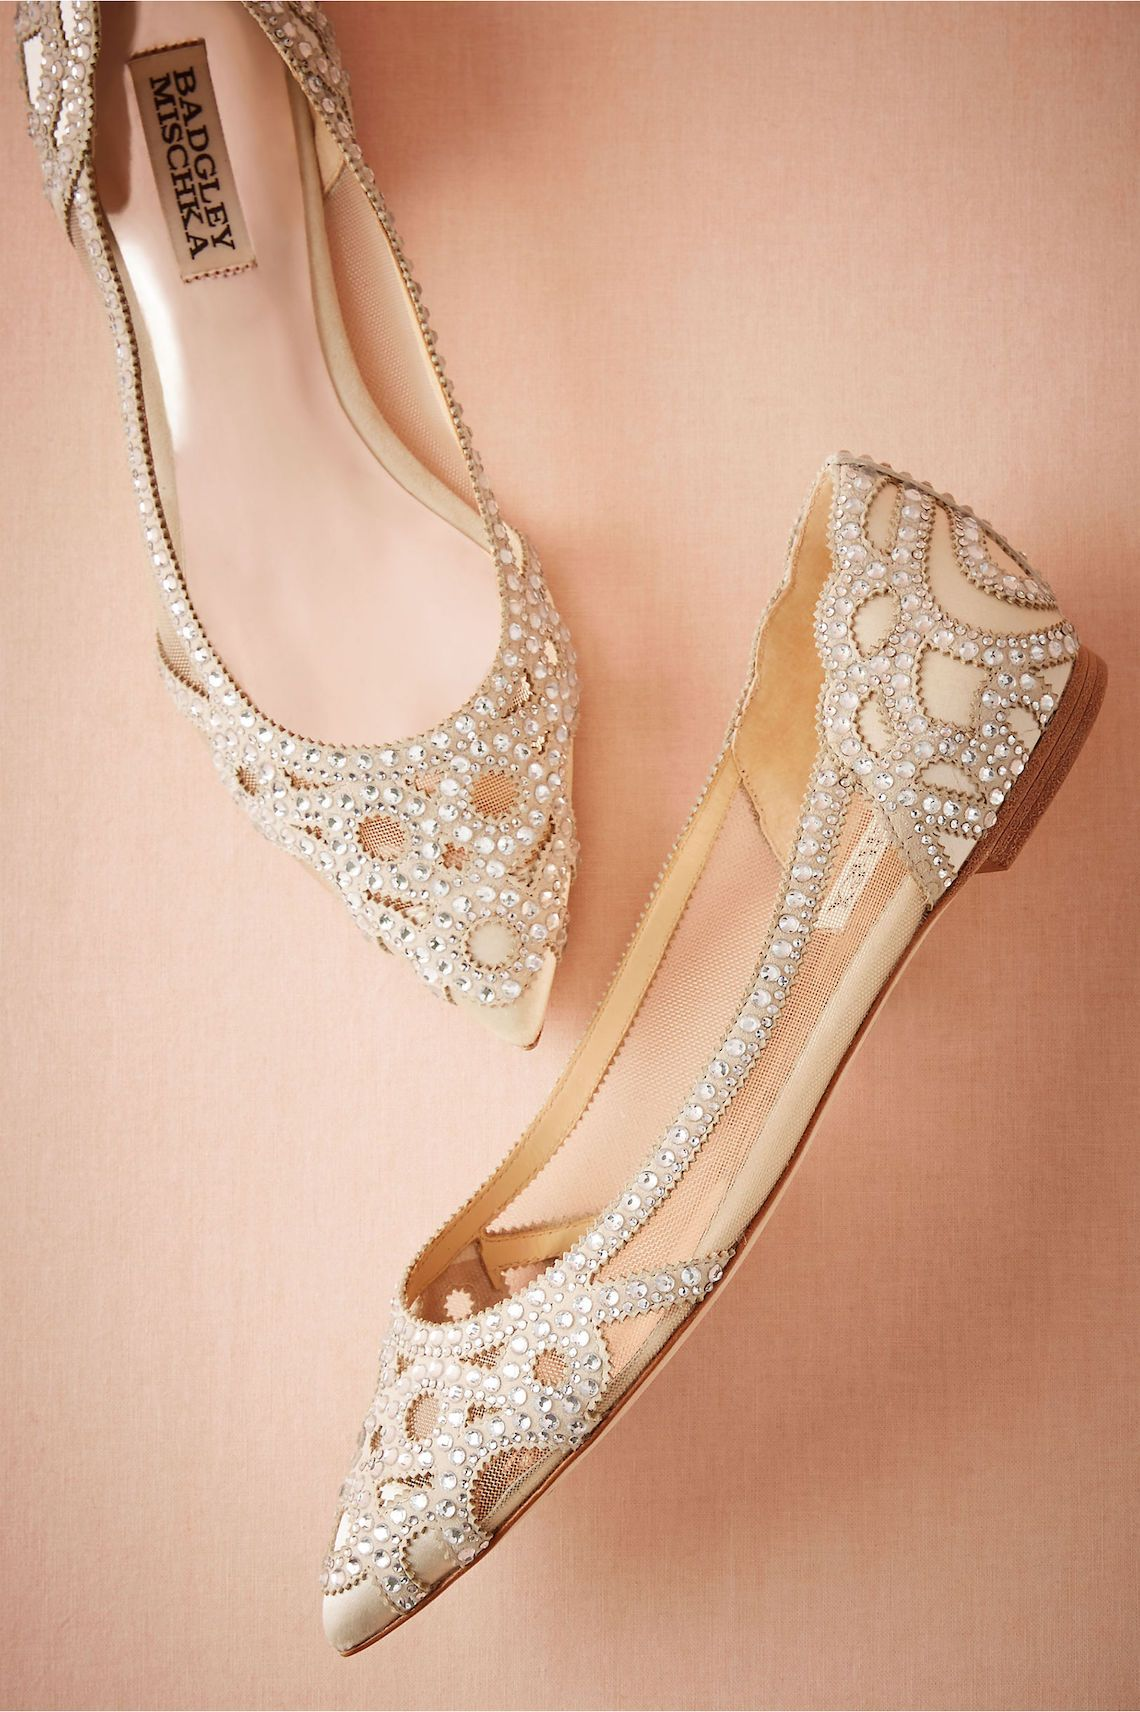 10 Flat Wedding Shoes That Are Just As Chic As Heels Bridal